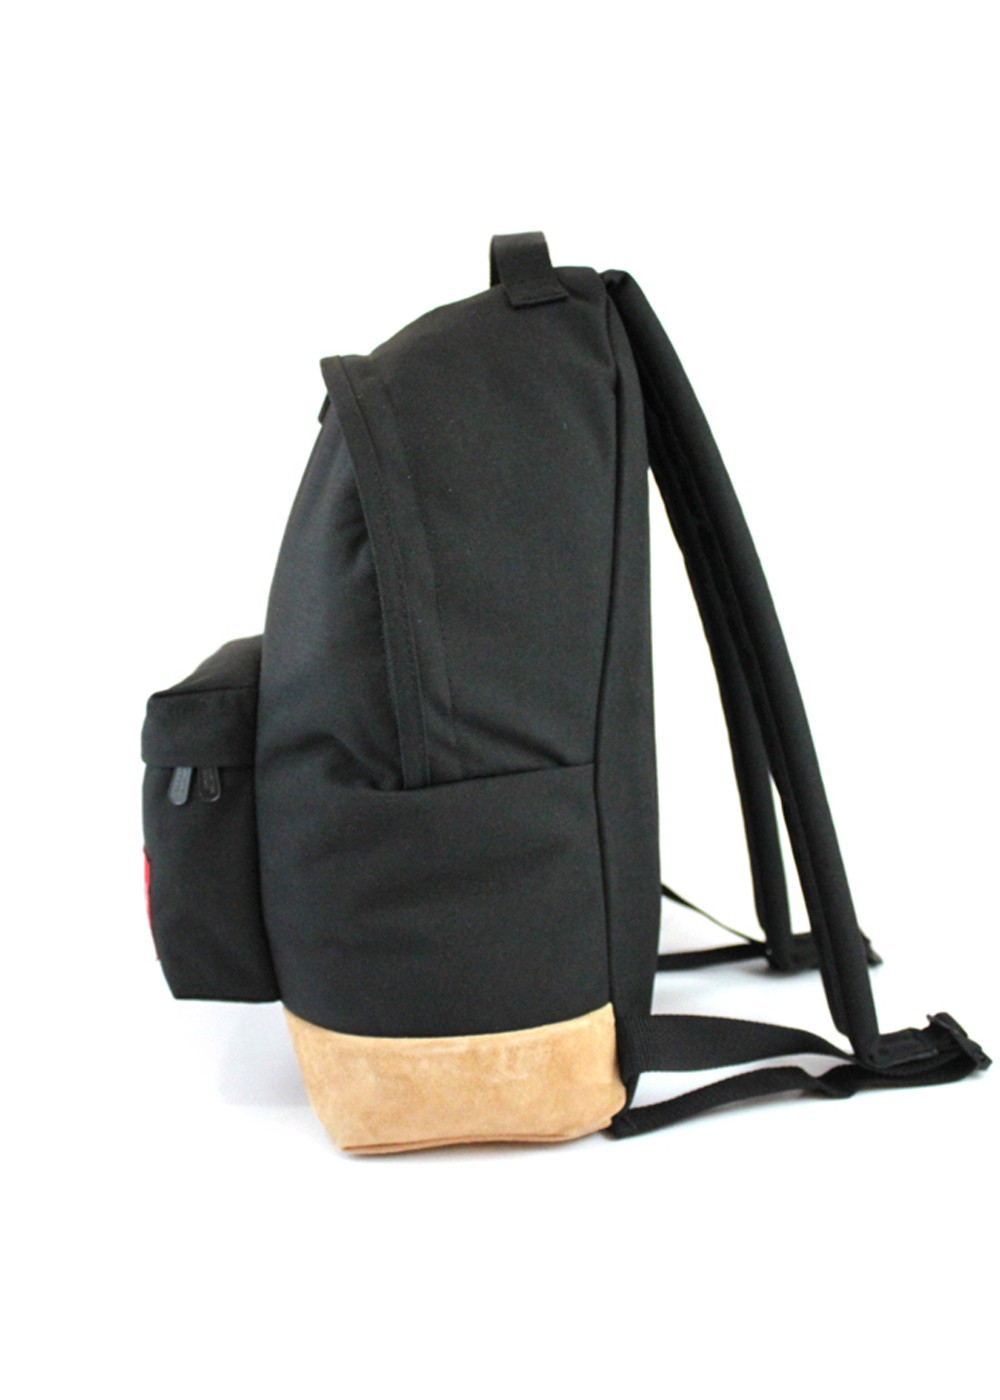 Suede Fabric Big Apple Backpack|ブラック|バックパック・リュック|Manhattan Portage